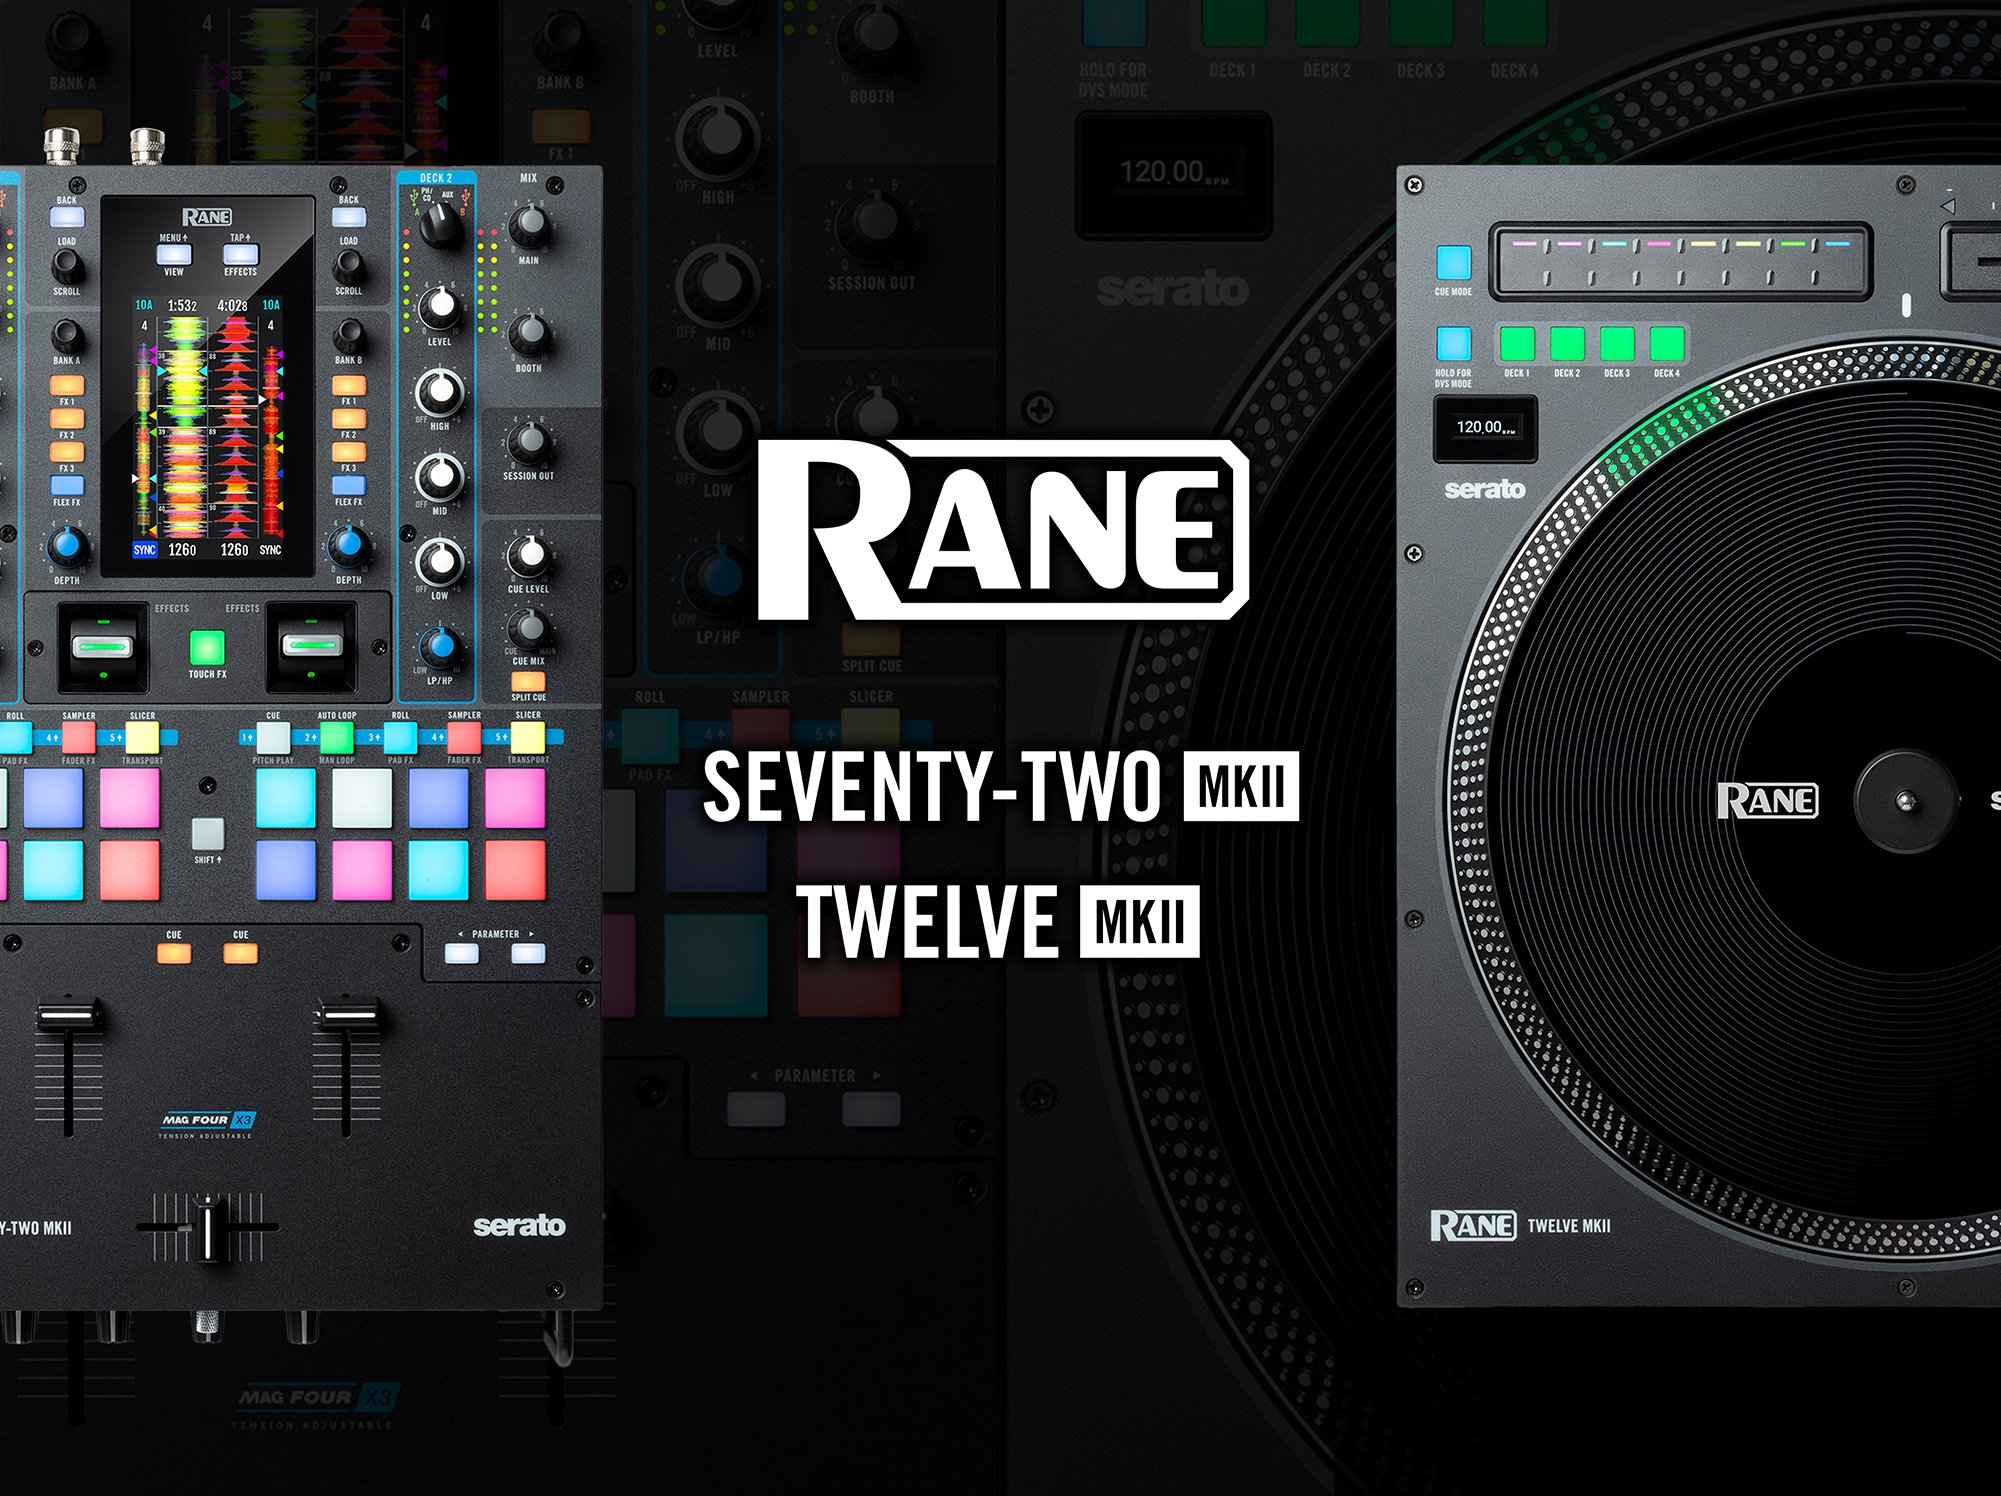 Rane SEVENTY-TWO MKII and TWELVE MKII for more than just Serato 5